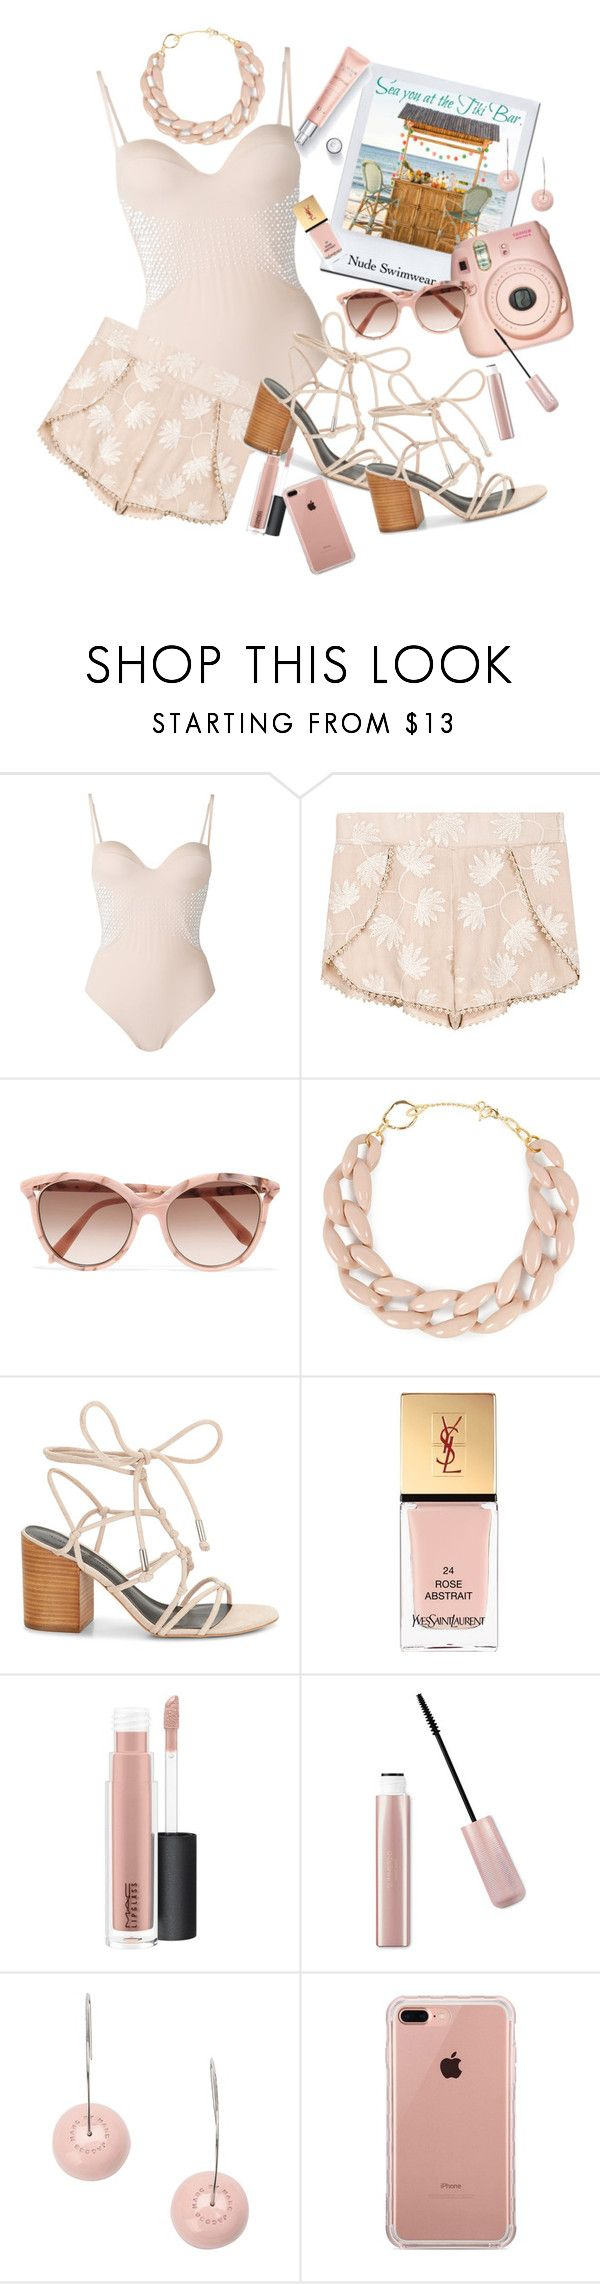 """Nude Swimwear"" by marionmeyer ❤ liked on Polyvore featuring La Perla, Fuji, Victoria Beckham, DIANA BROUSSARD, Rebecca Minkoff, Yves Saint Laurent, MAC Cosmetics, Marc by Marc Jacobs, Belkin and nudeswimwear"